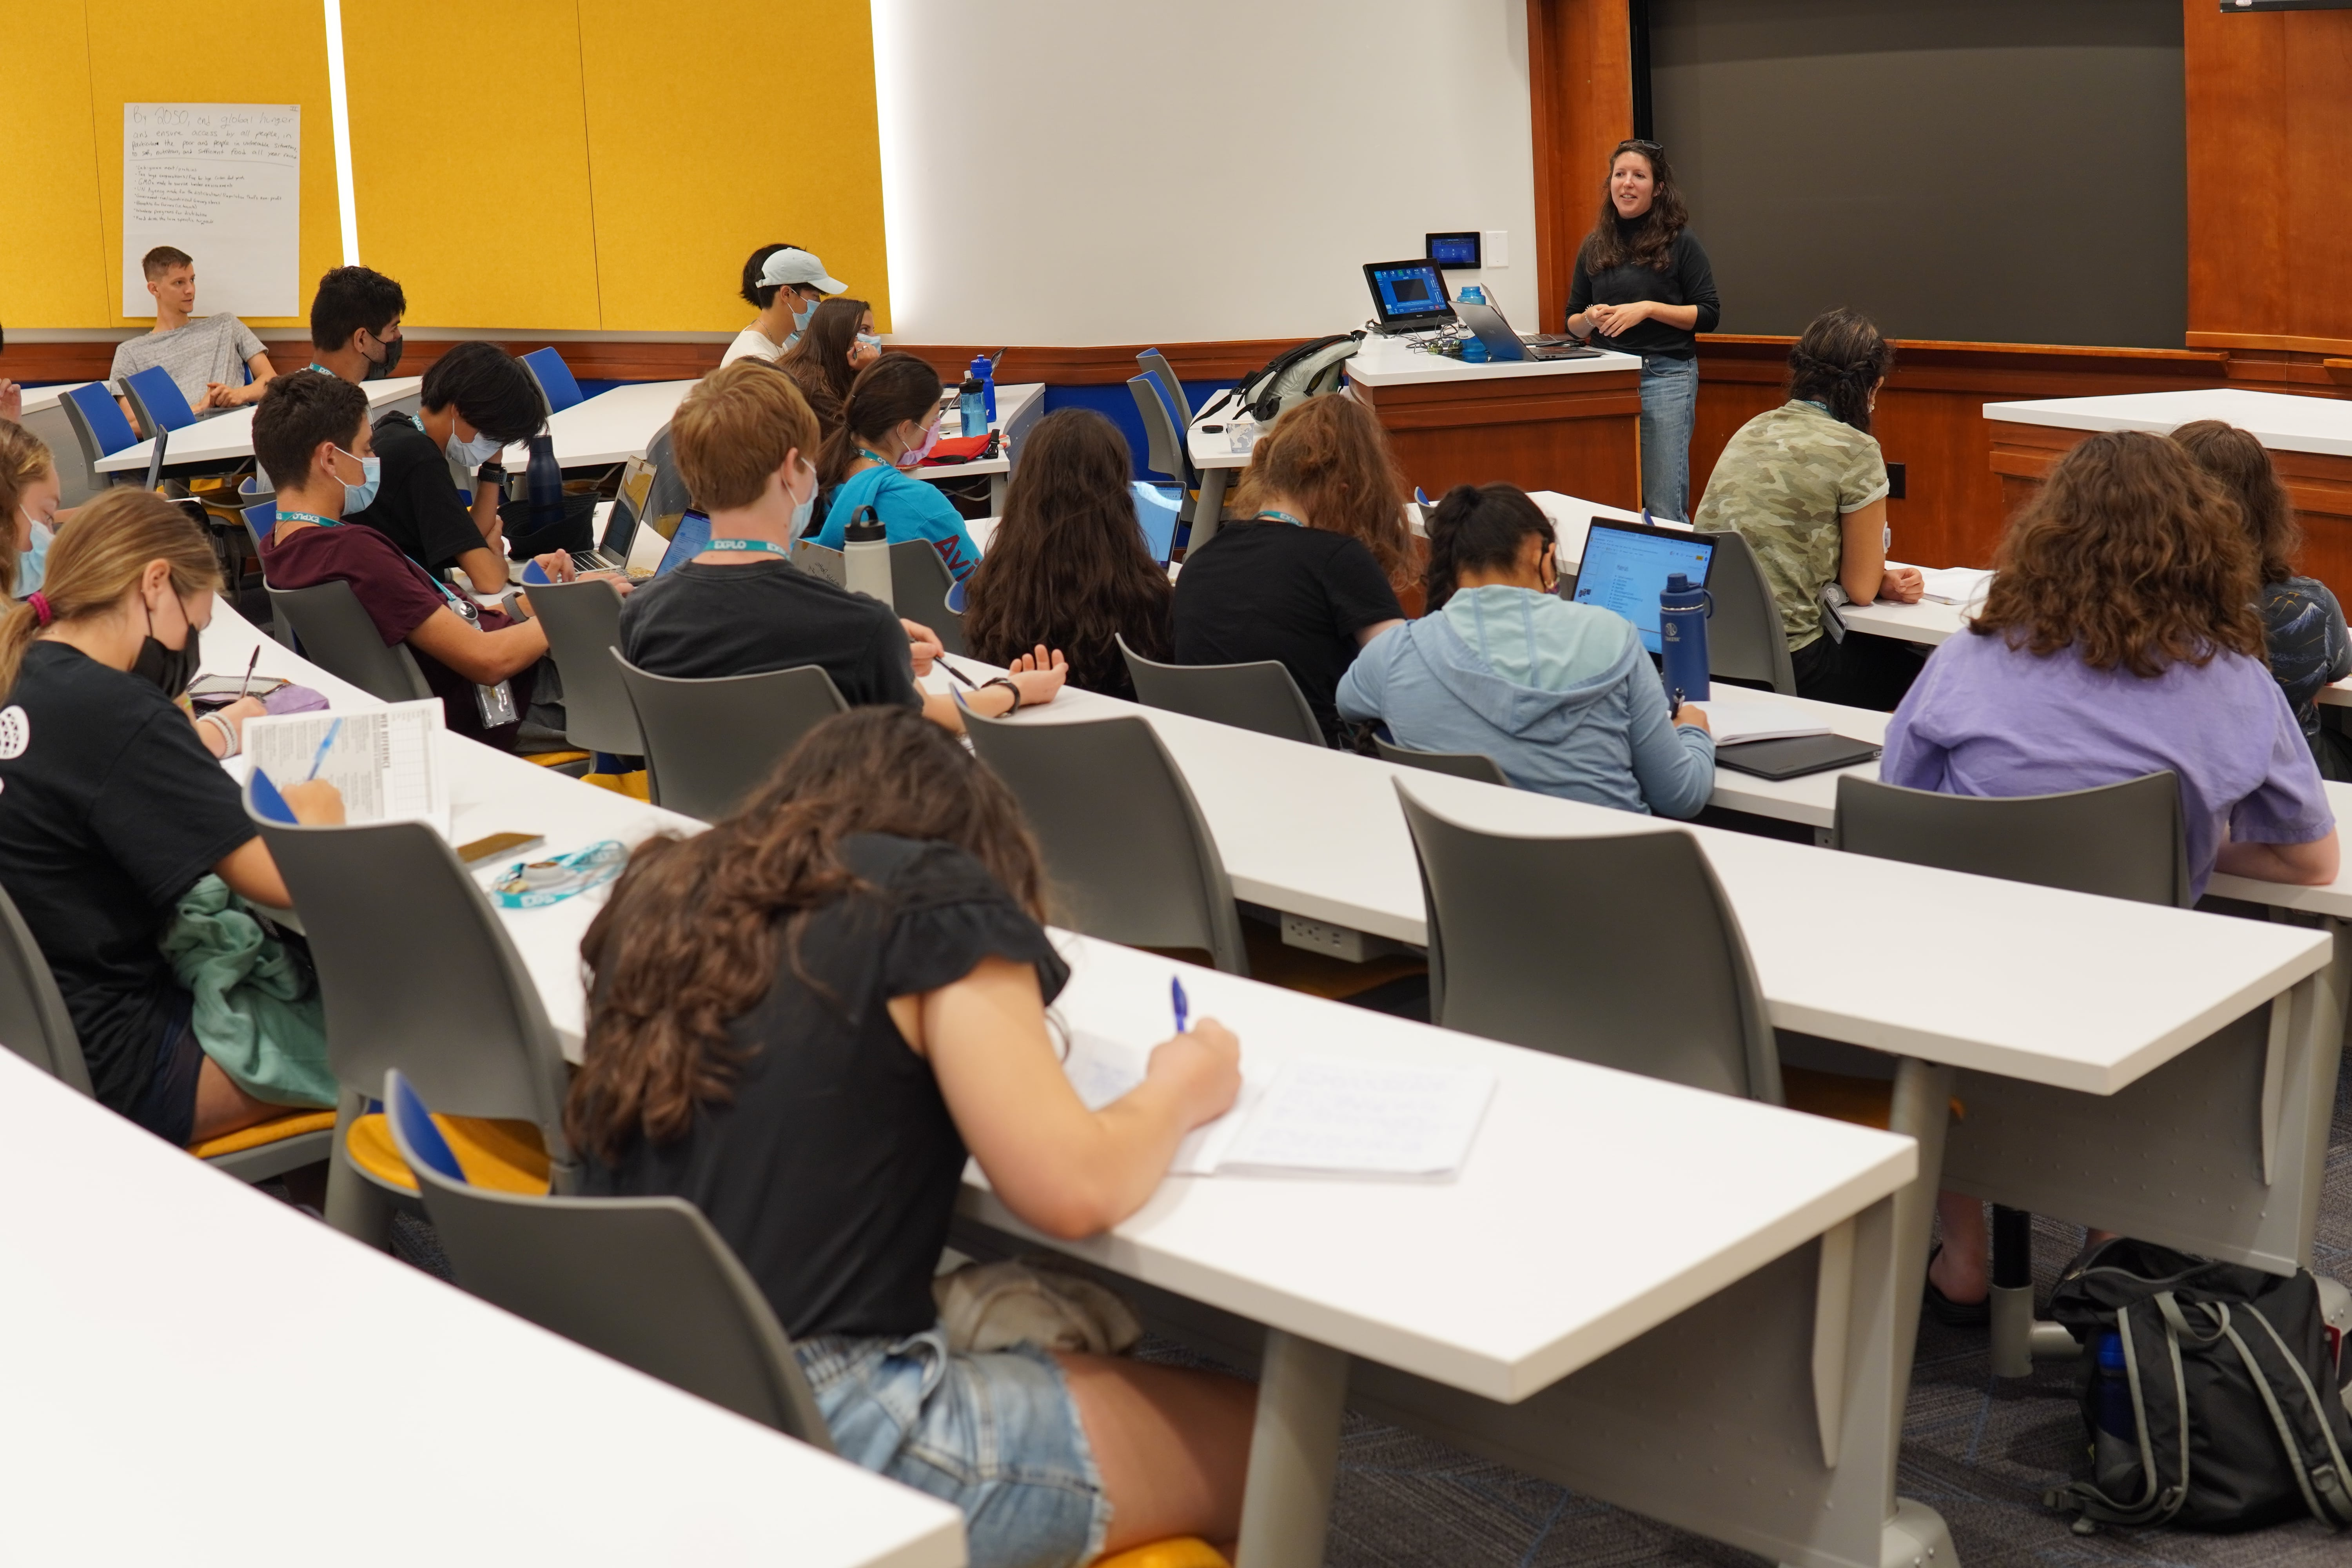 Students take their seats in a lecture hall for the guest speaker.